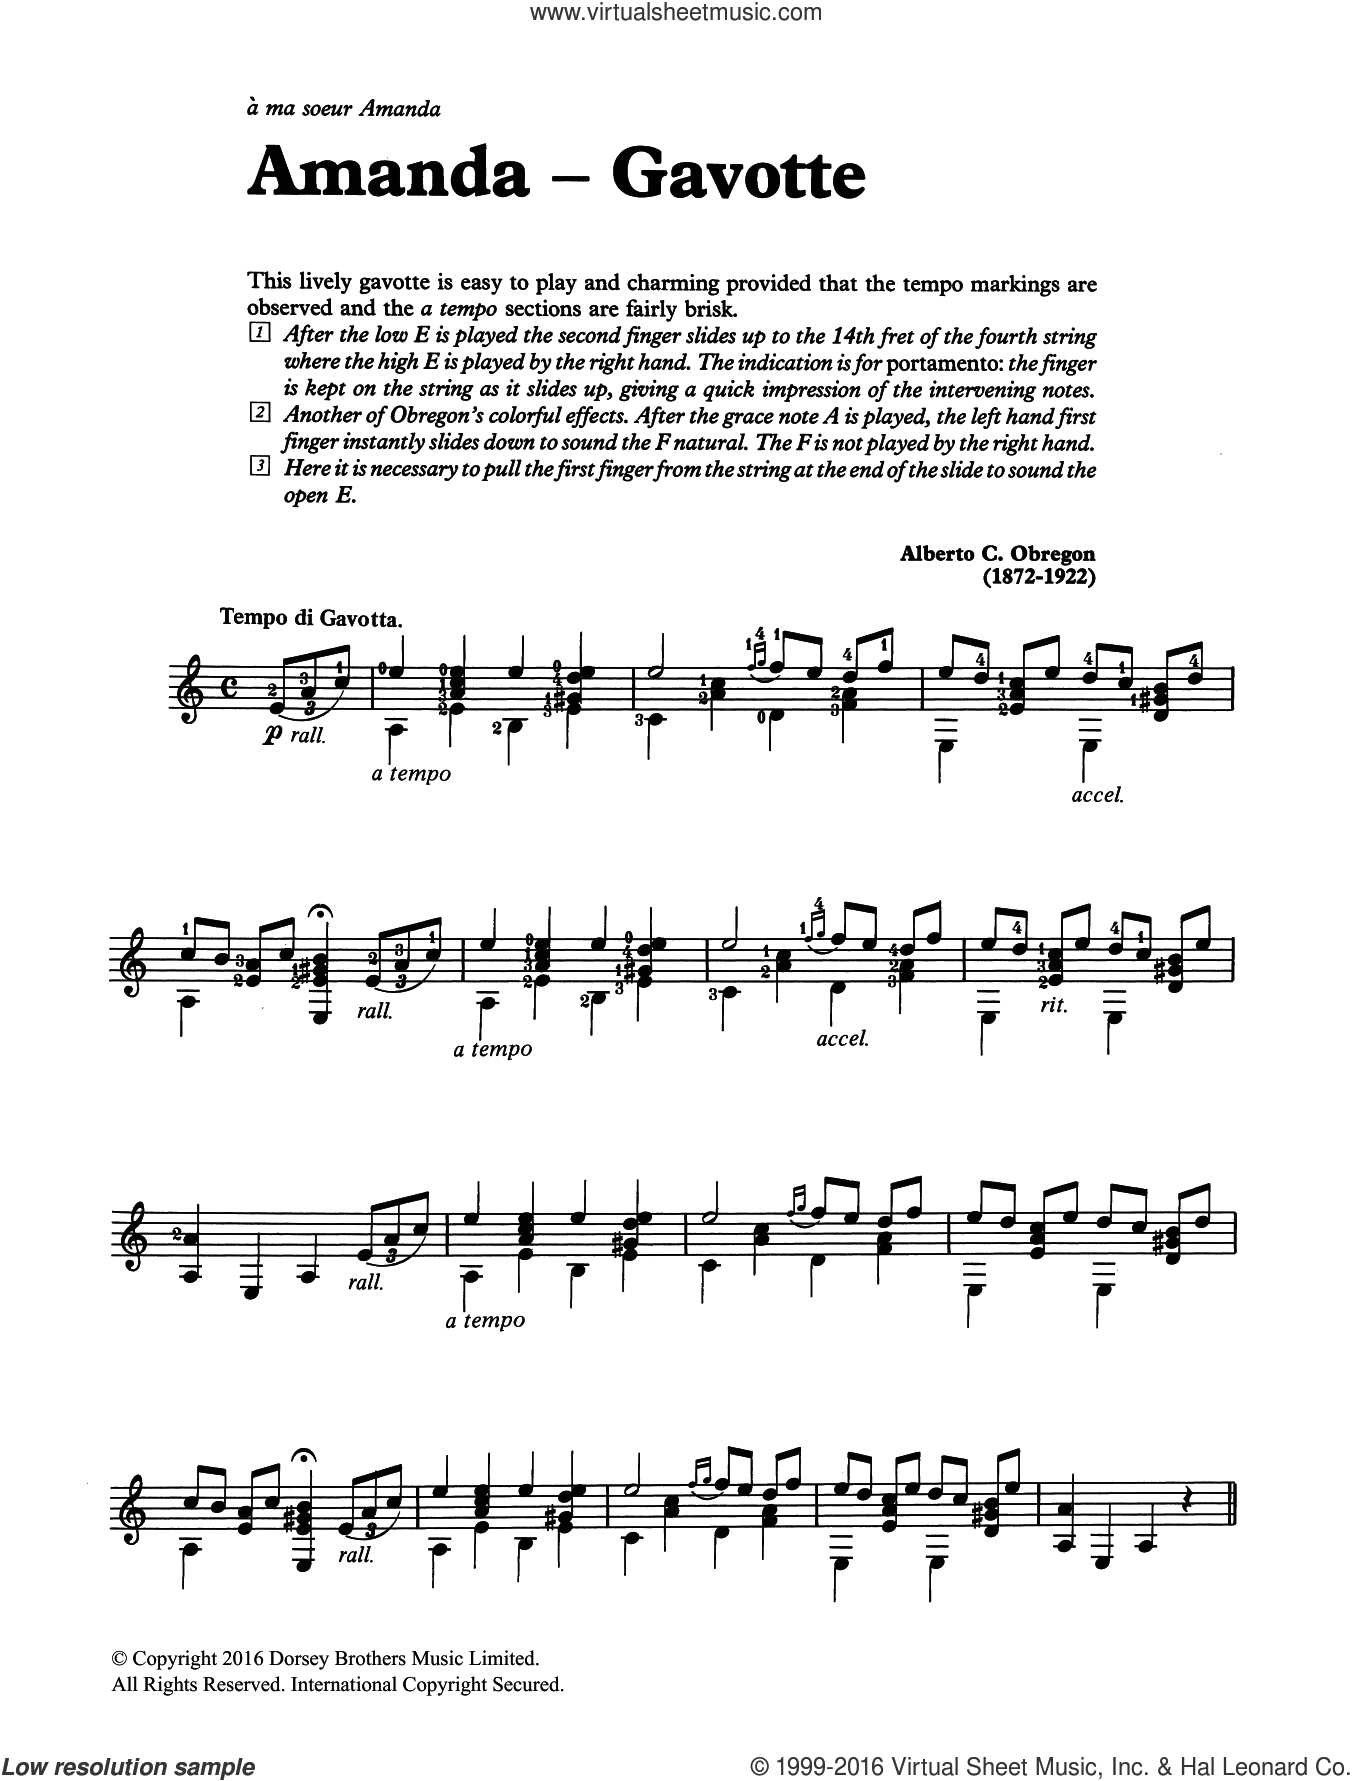 Obregon Amanda Gavotte Sheet Music For Guitar Solo Chords